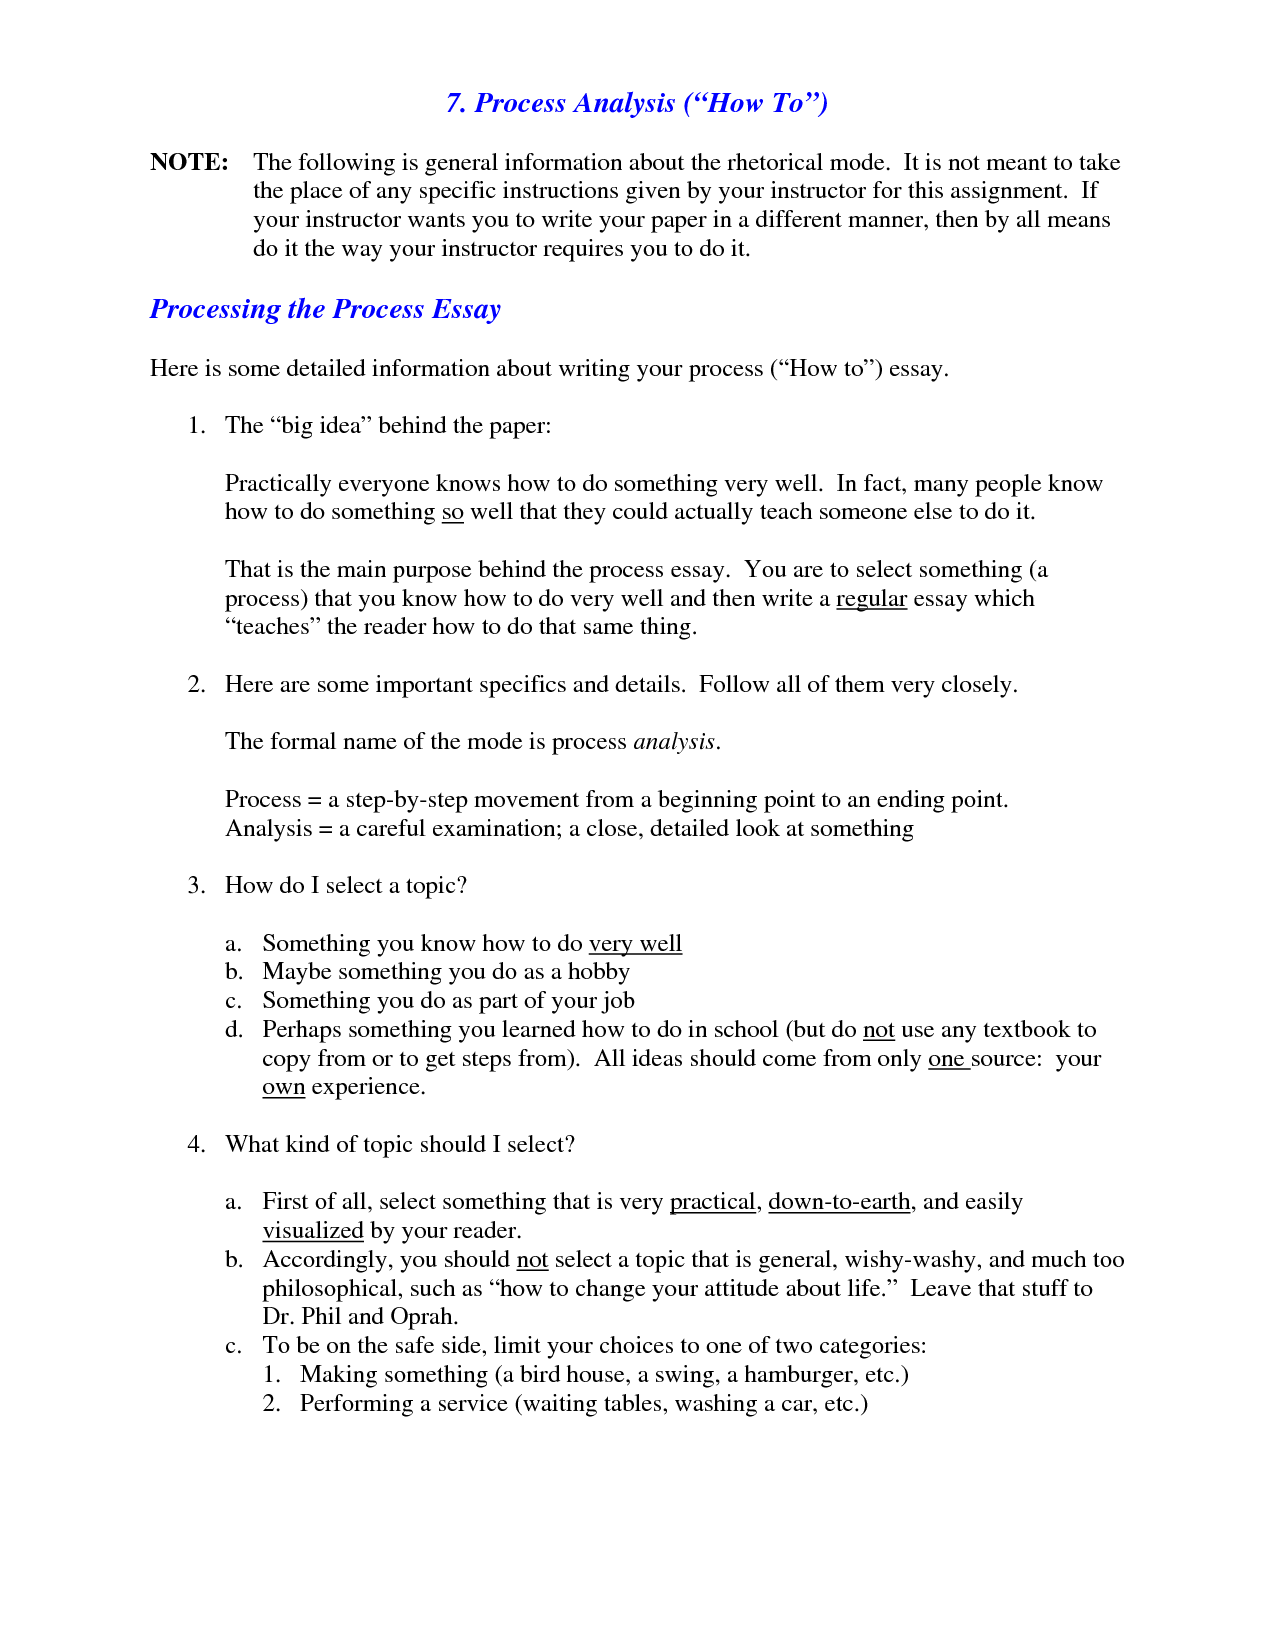 004 Essay Example What Is Process Analysis Of L How To Top Write A Ielts Thesis Statement For Full